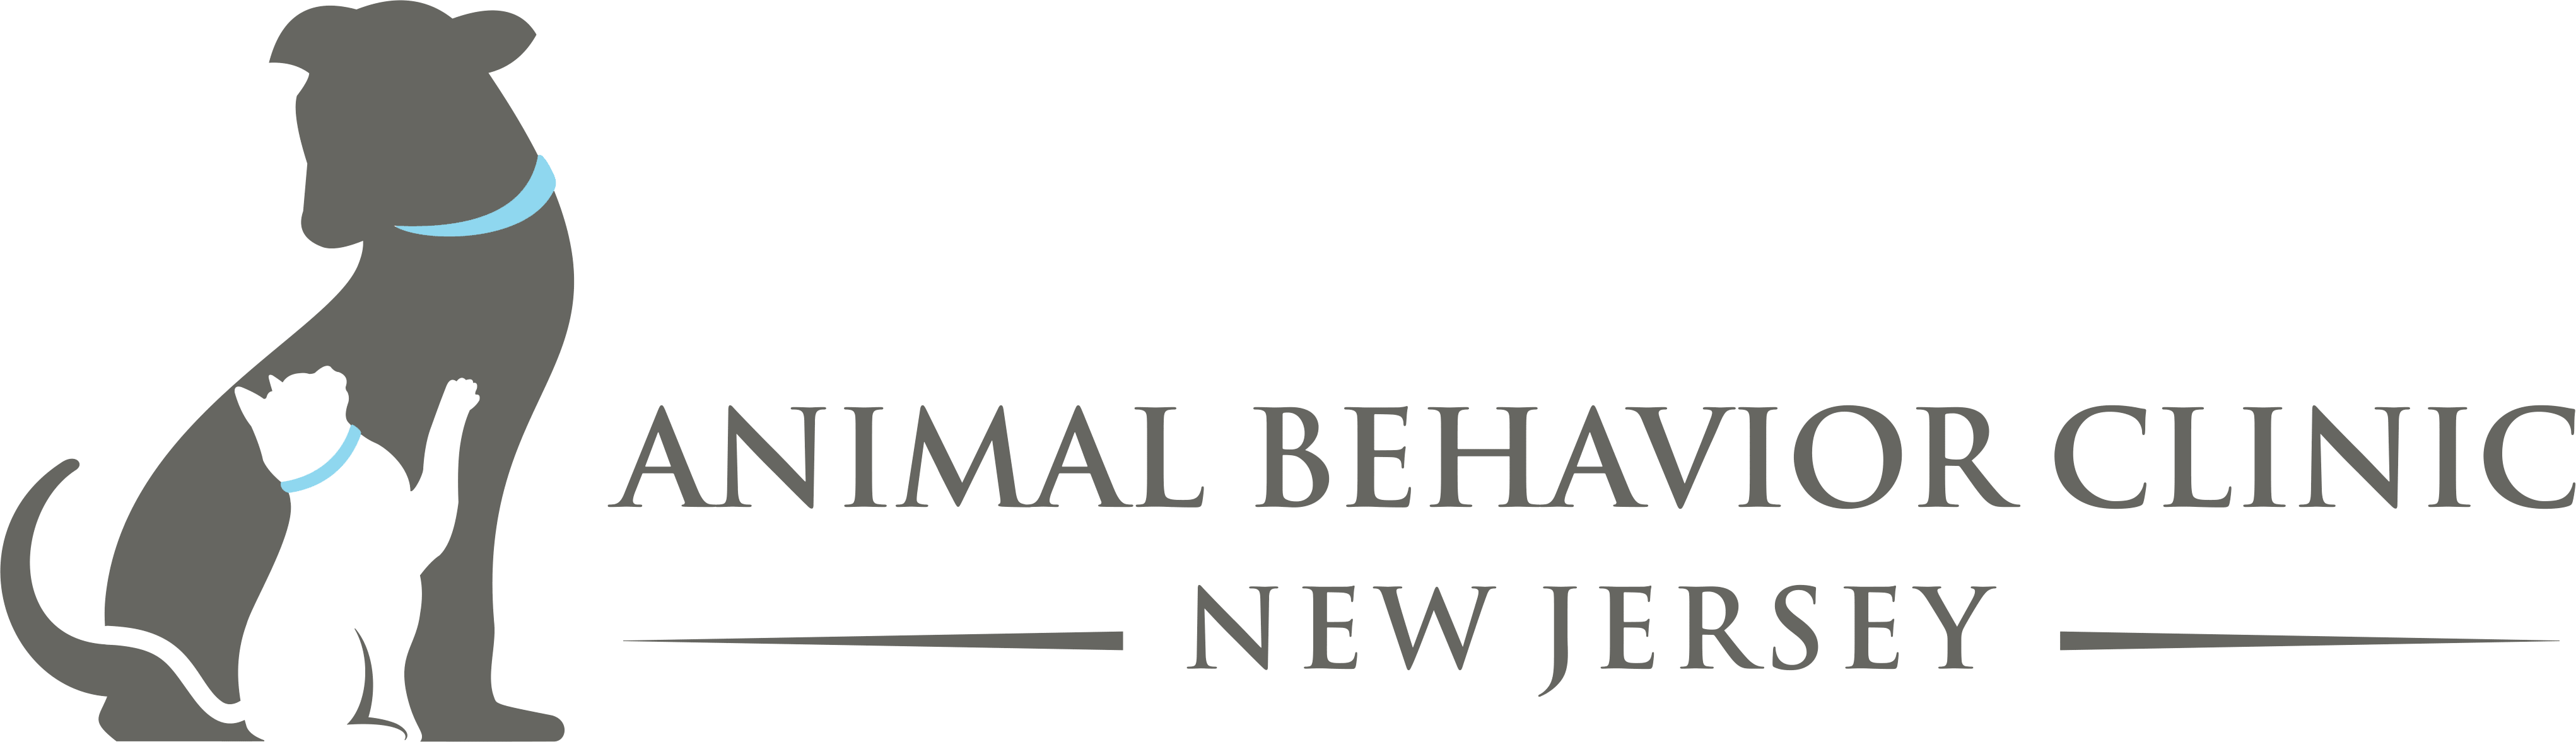 Animal Behavior Clinic Logo